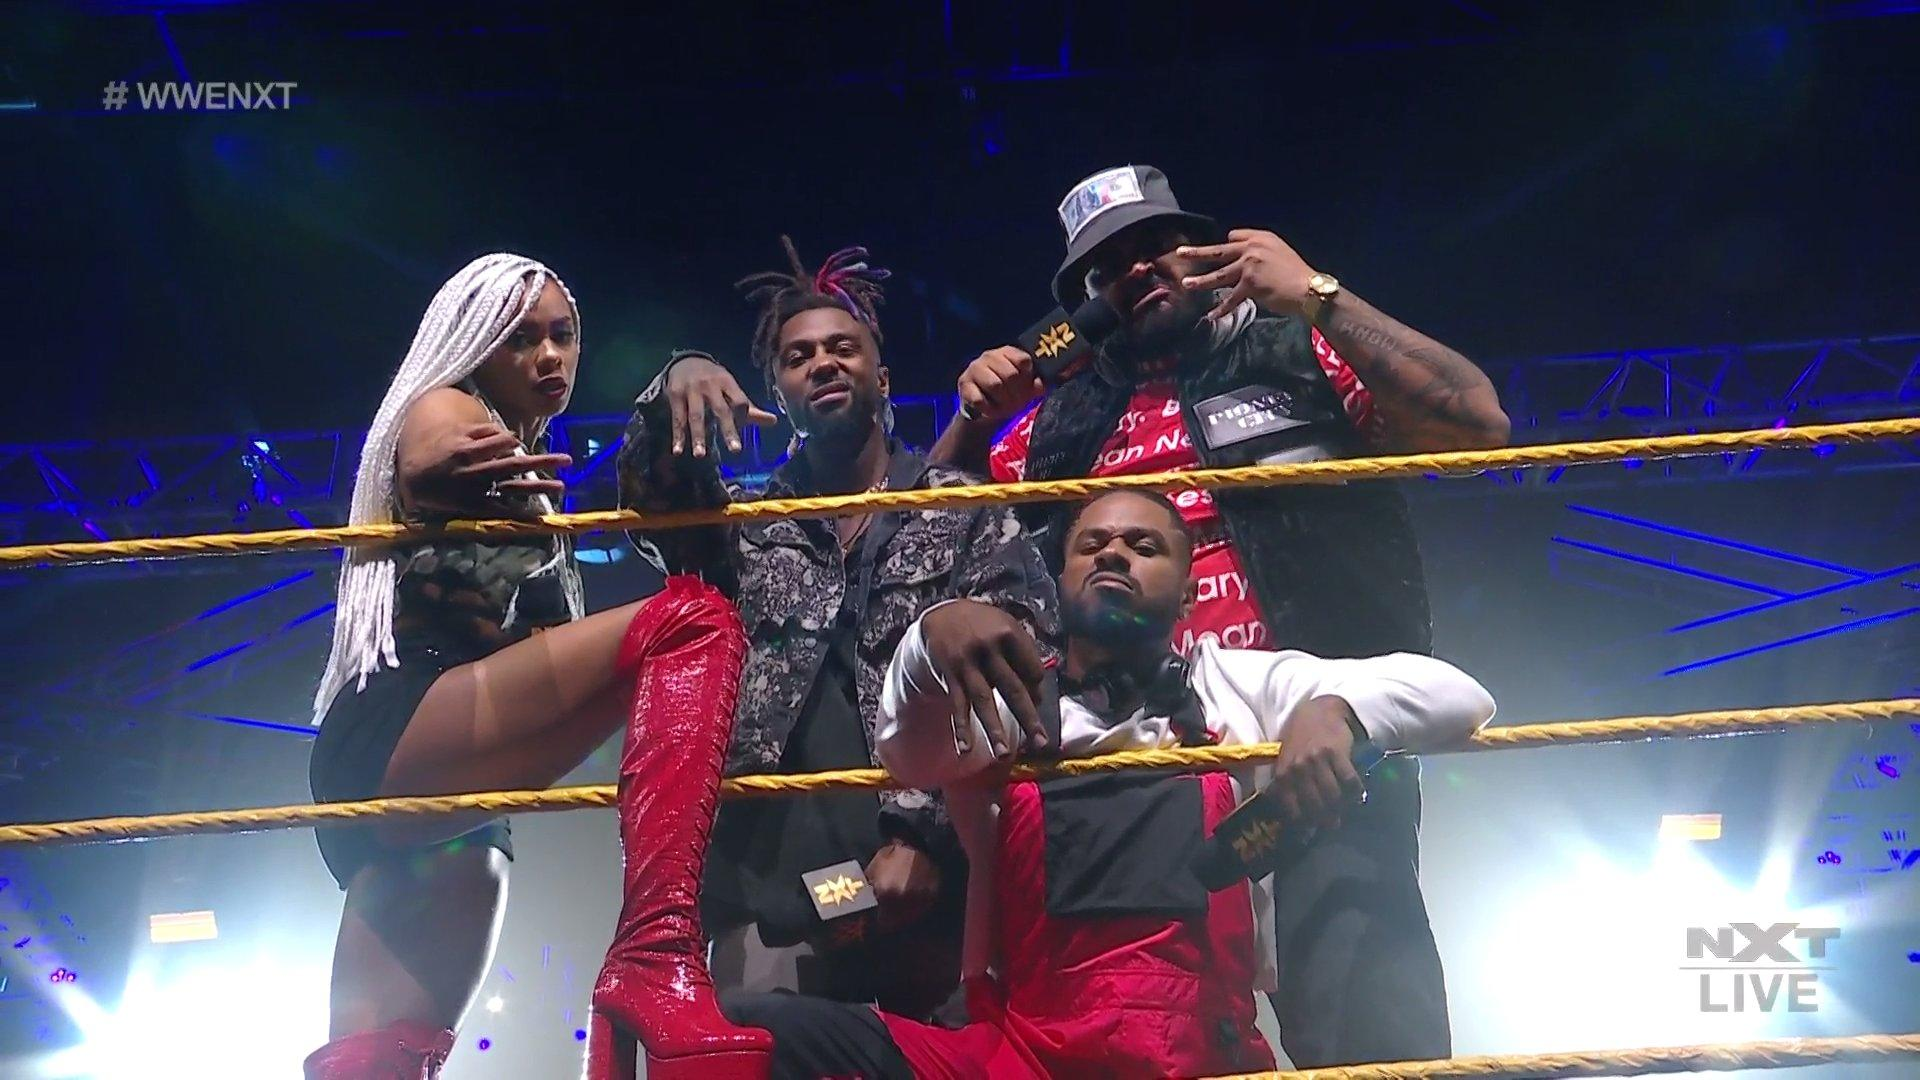 Isaiah 'Swerve' Scott Officially Introduces Hit Row On WWE NXT